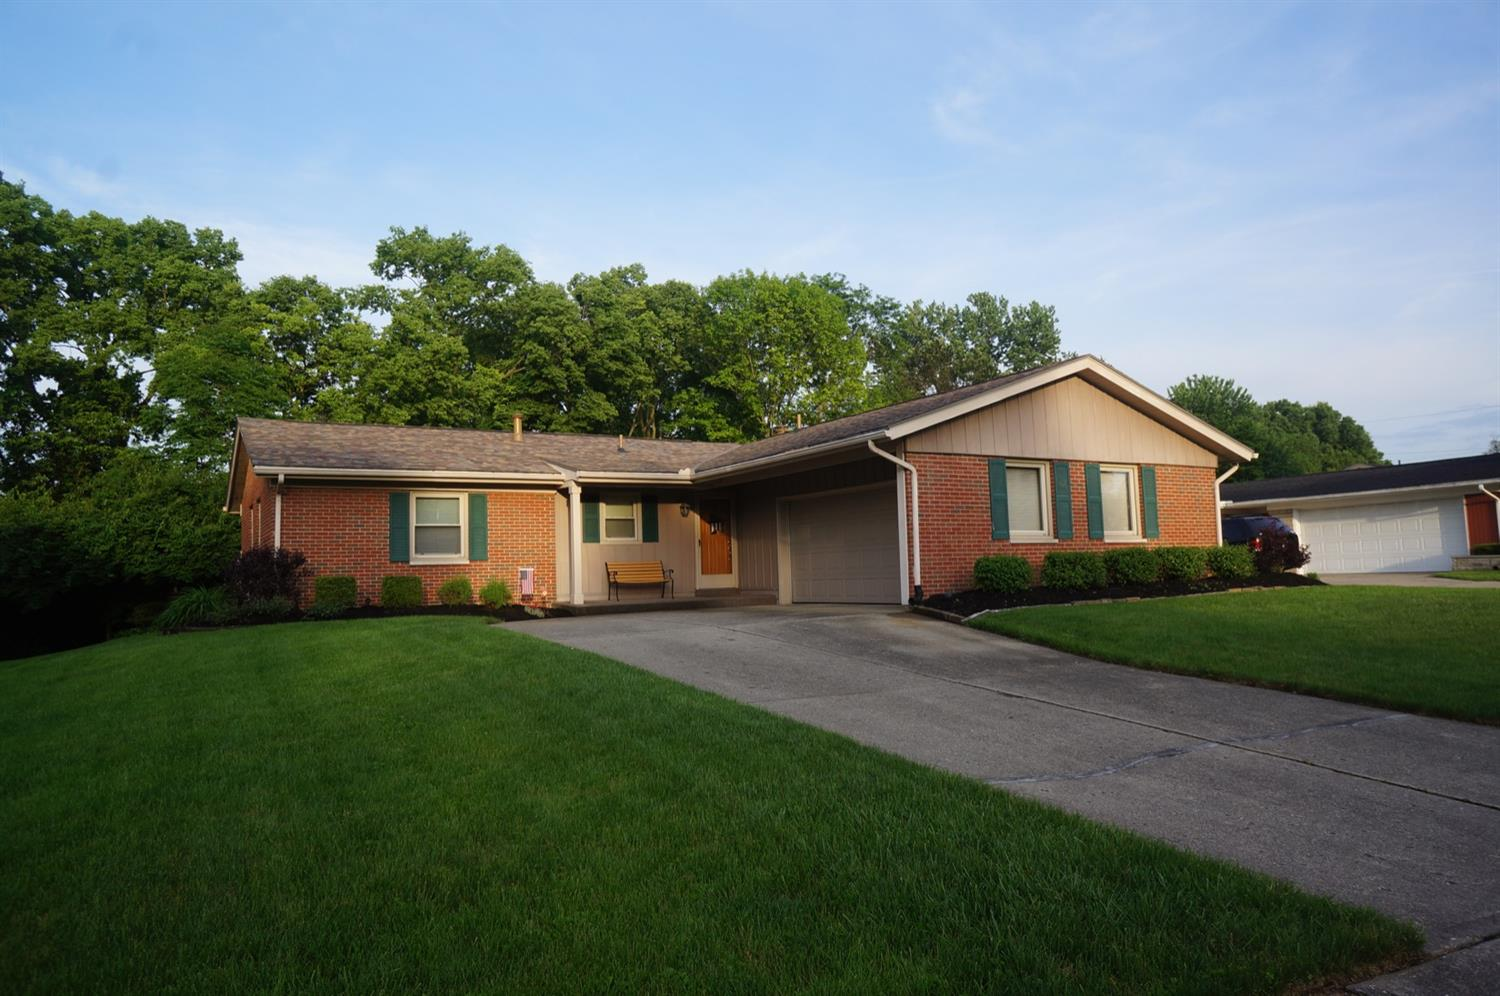 Property for sale at 133 Whisman Drive, Middletown,  Ohio 45042